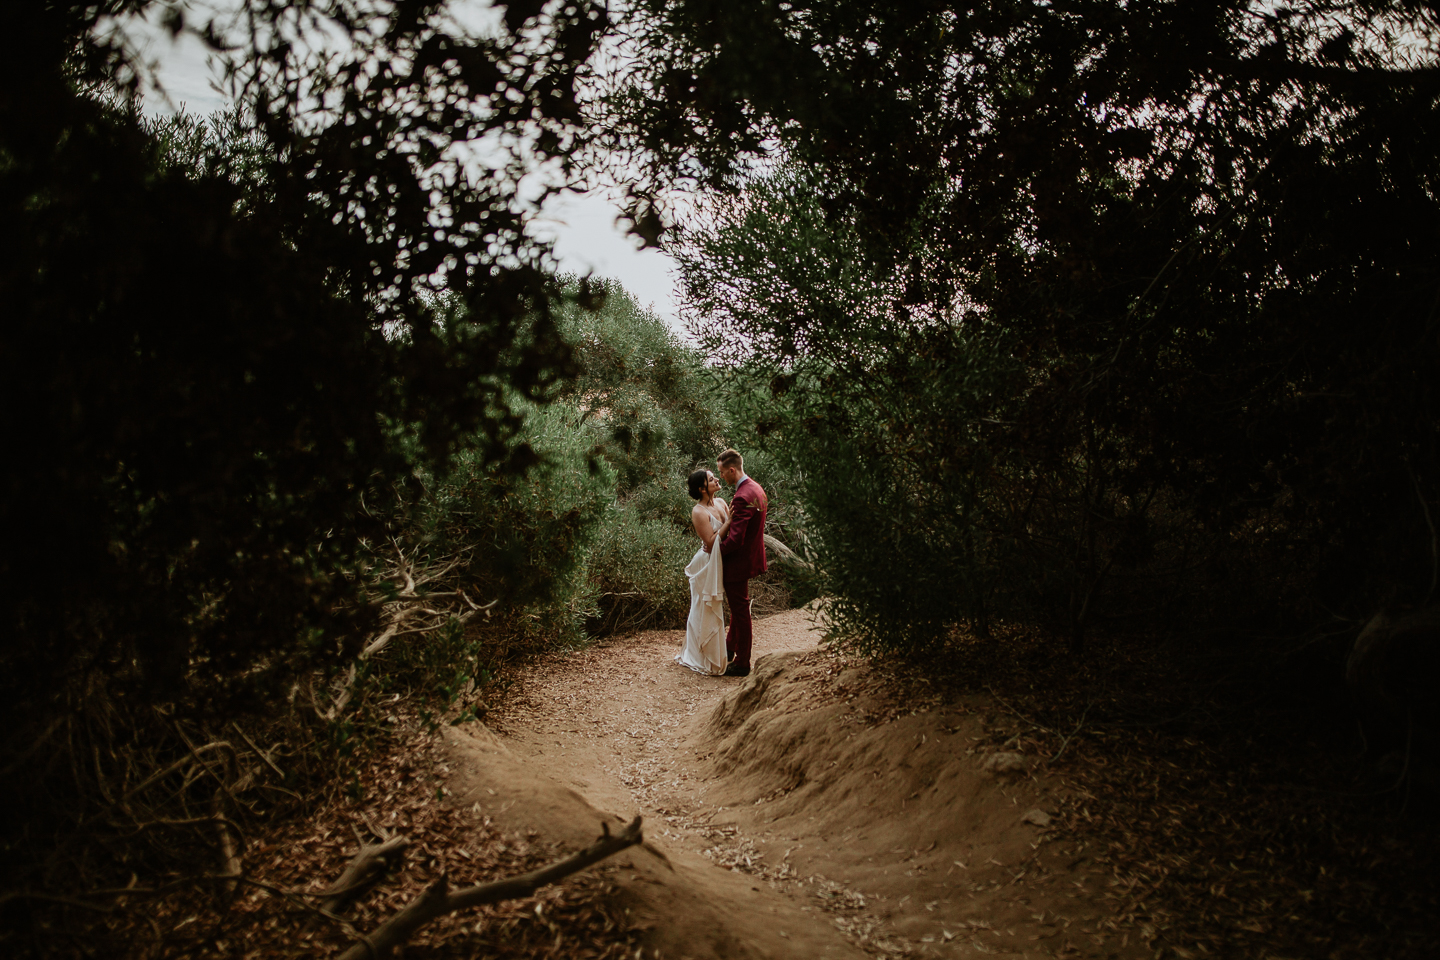 San diego intimate wedding photographer